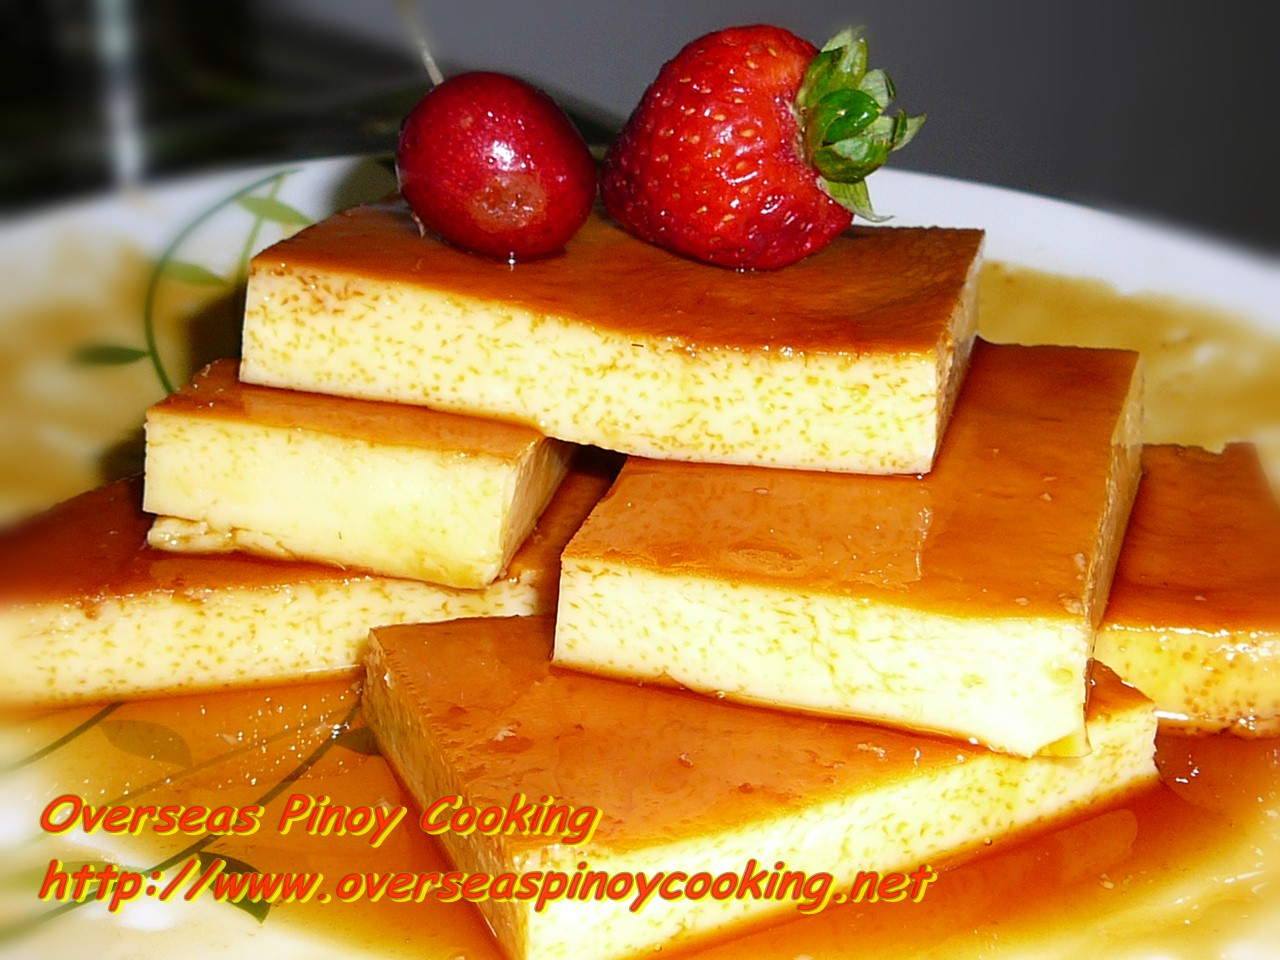 ... flan spanish flan flan with lavender flan super easy baked flan